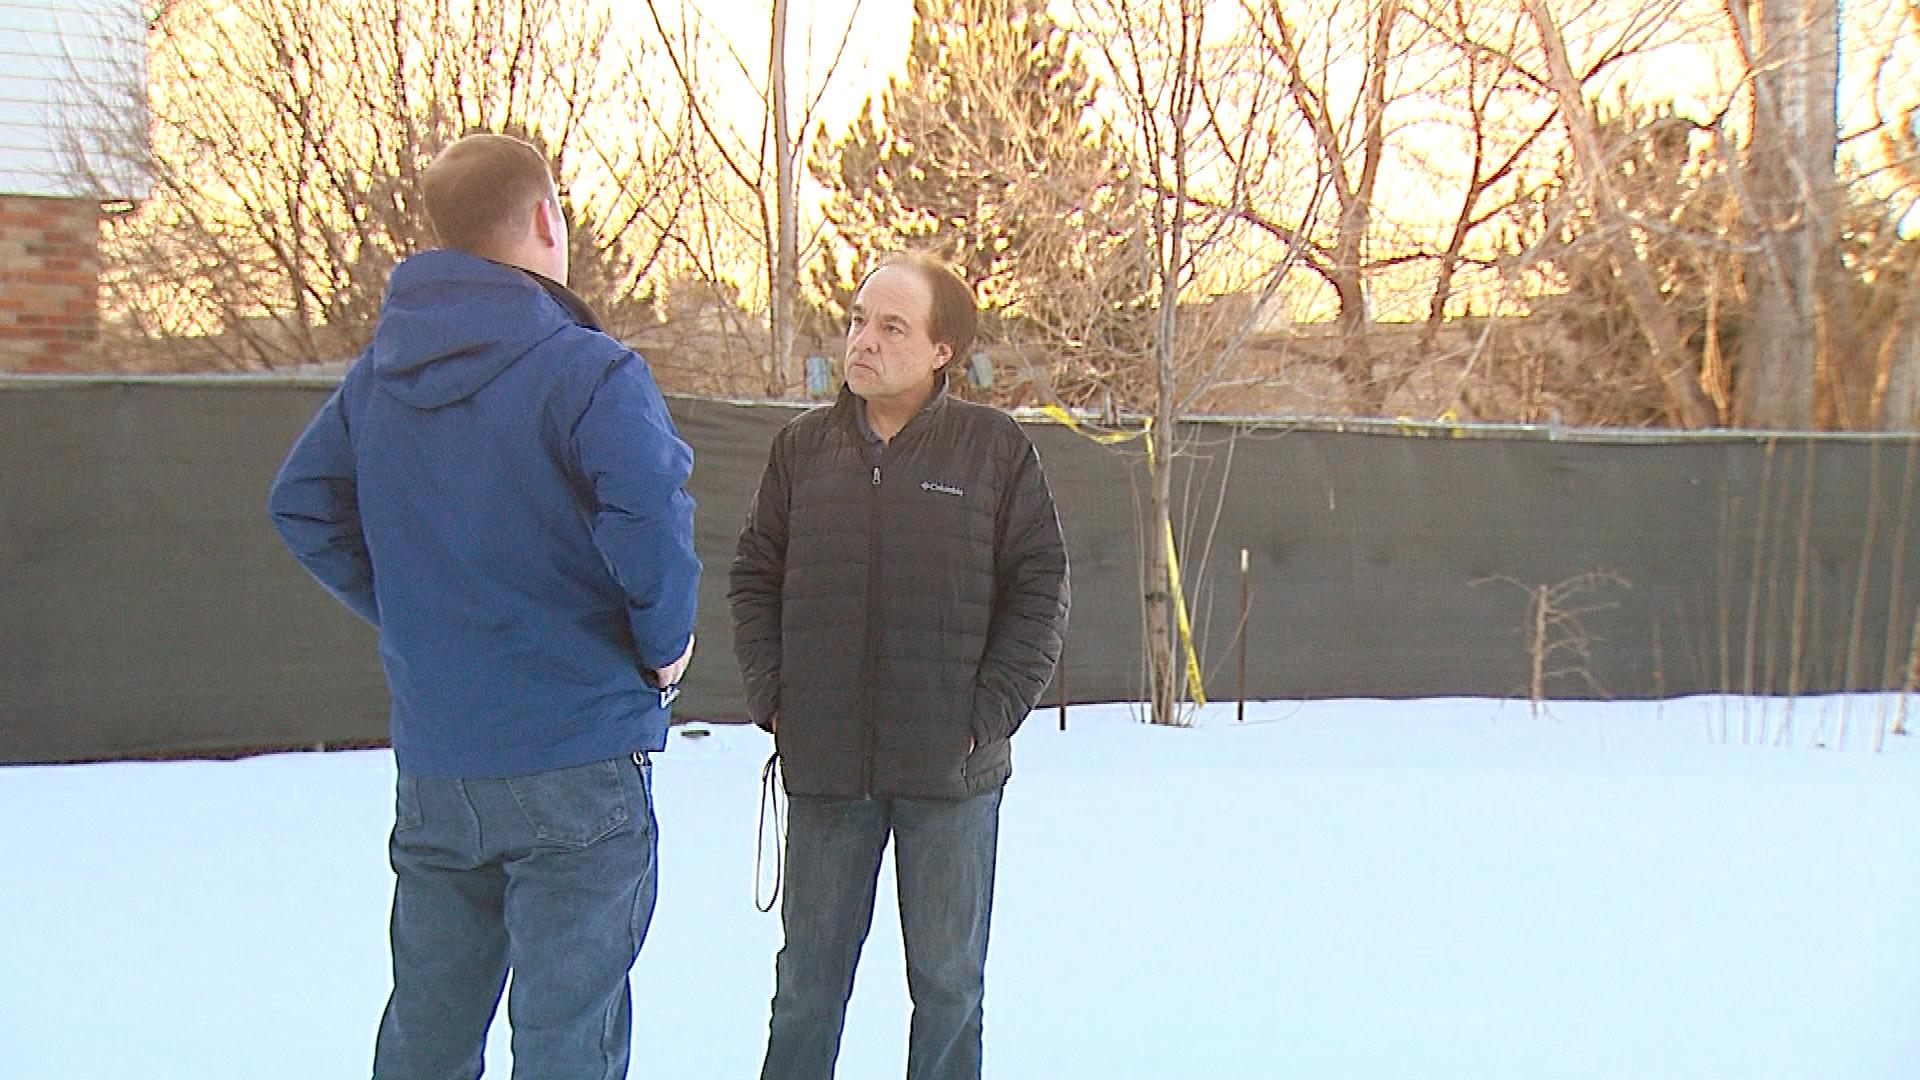 CBS4's Jeff Todd interviews Leo Lech where the house once stood (credit: CBS)